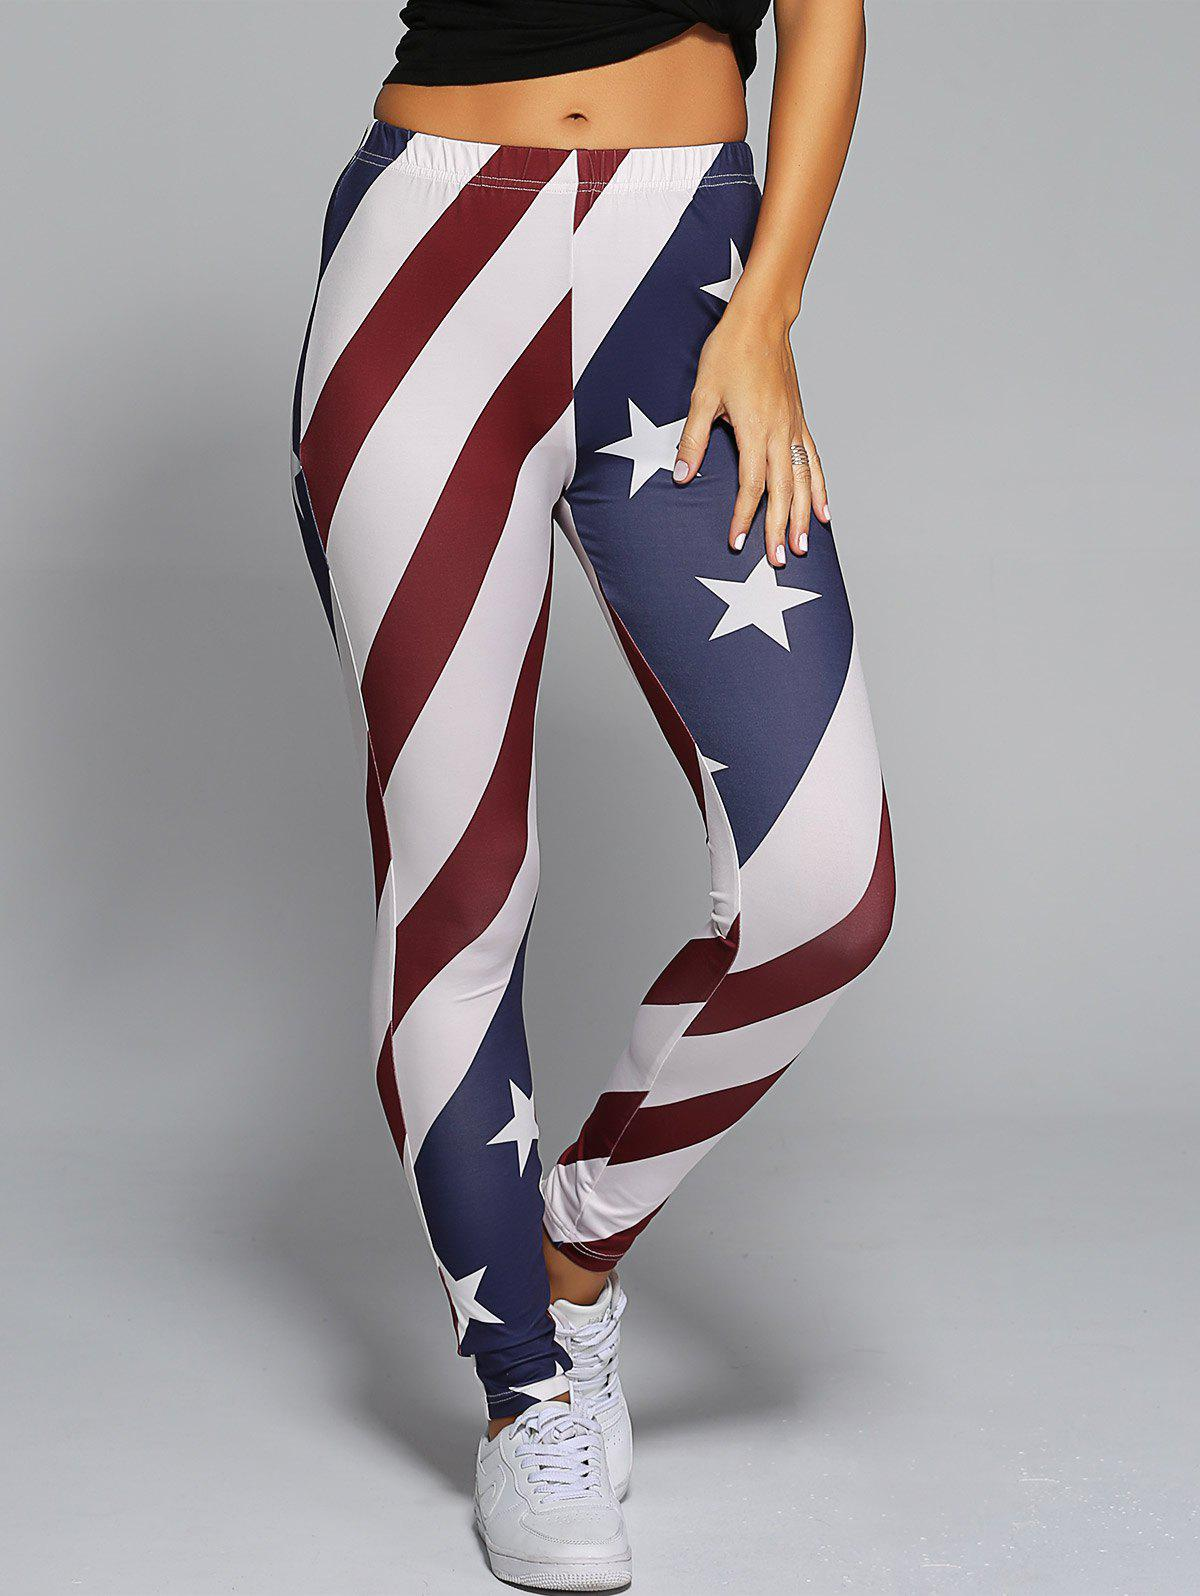 American Flag Print Skinny Pants - RED/WHITE/BLUE S